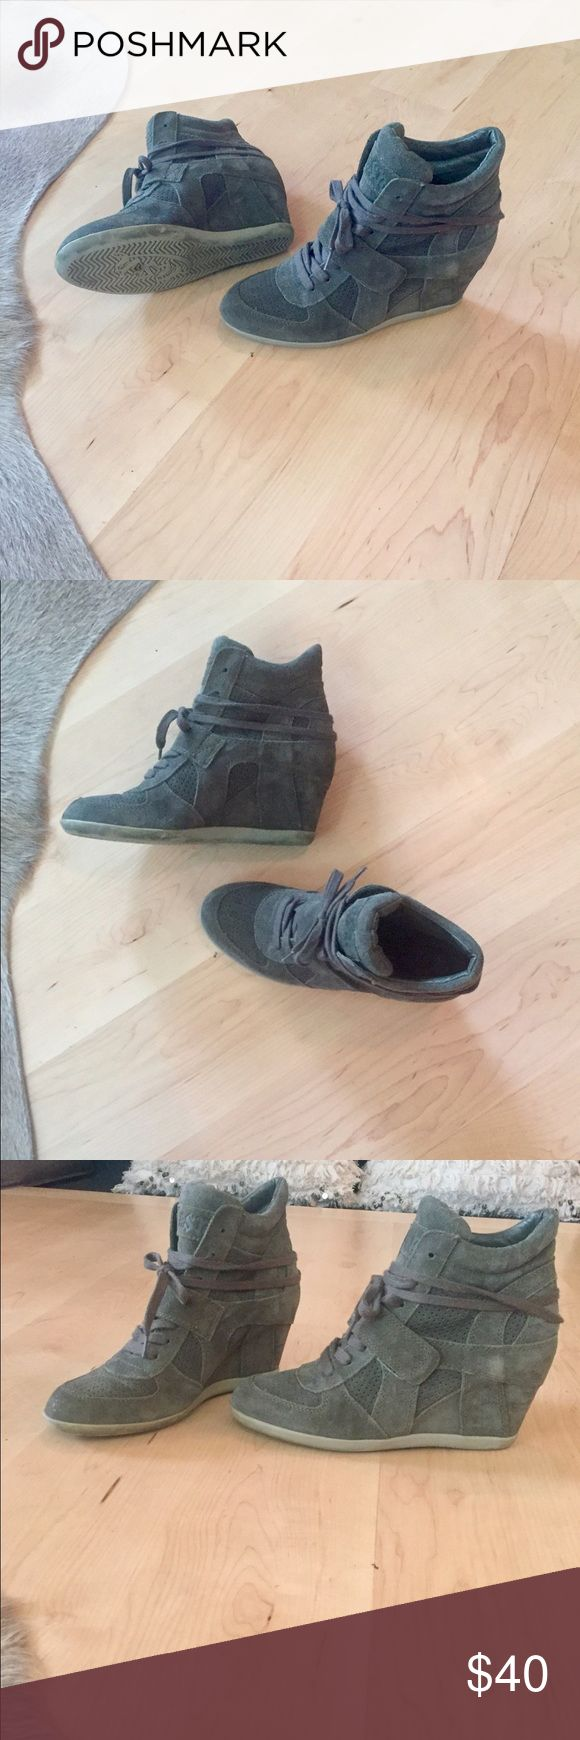 Ash Bowie Sneakers Ash Bowie Sneakers in army green. Hidden wedge makes these so cute and comfortable! Worn twice. Purchased to large. Ash Shoes Sneakers